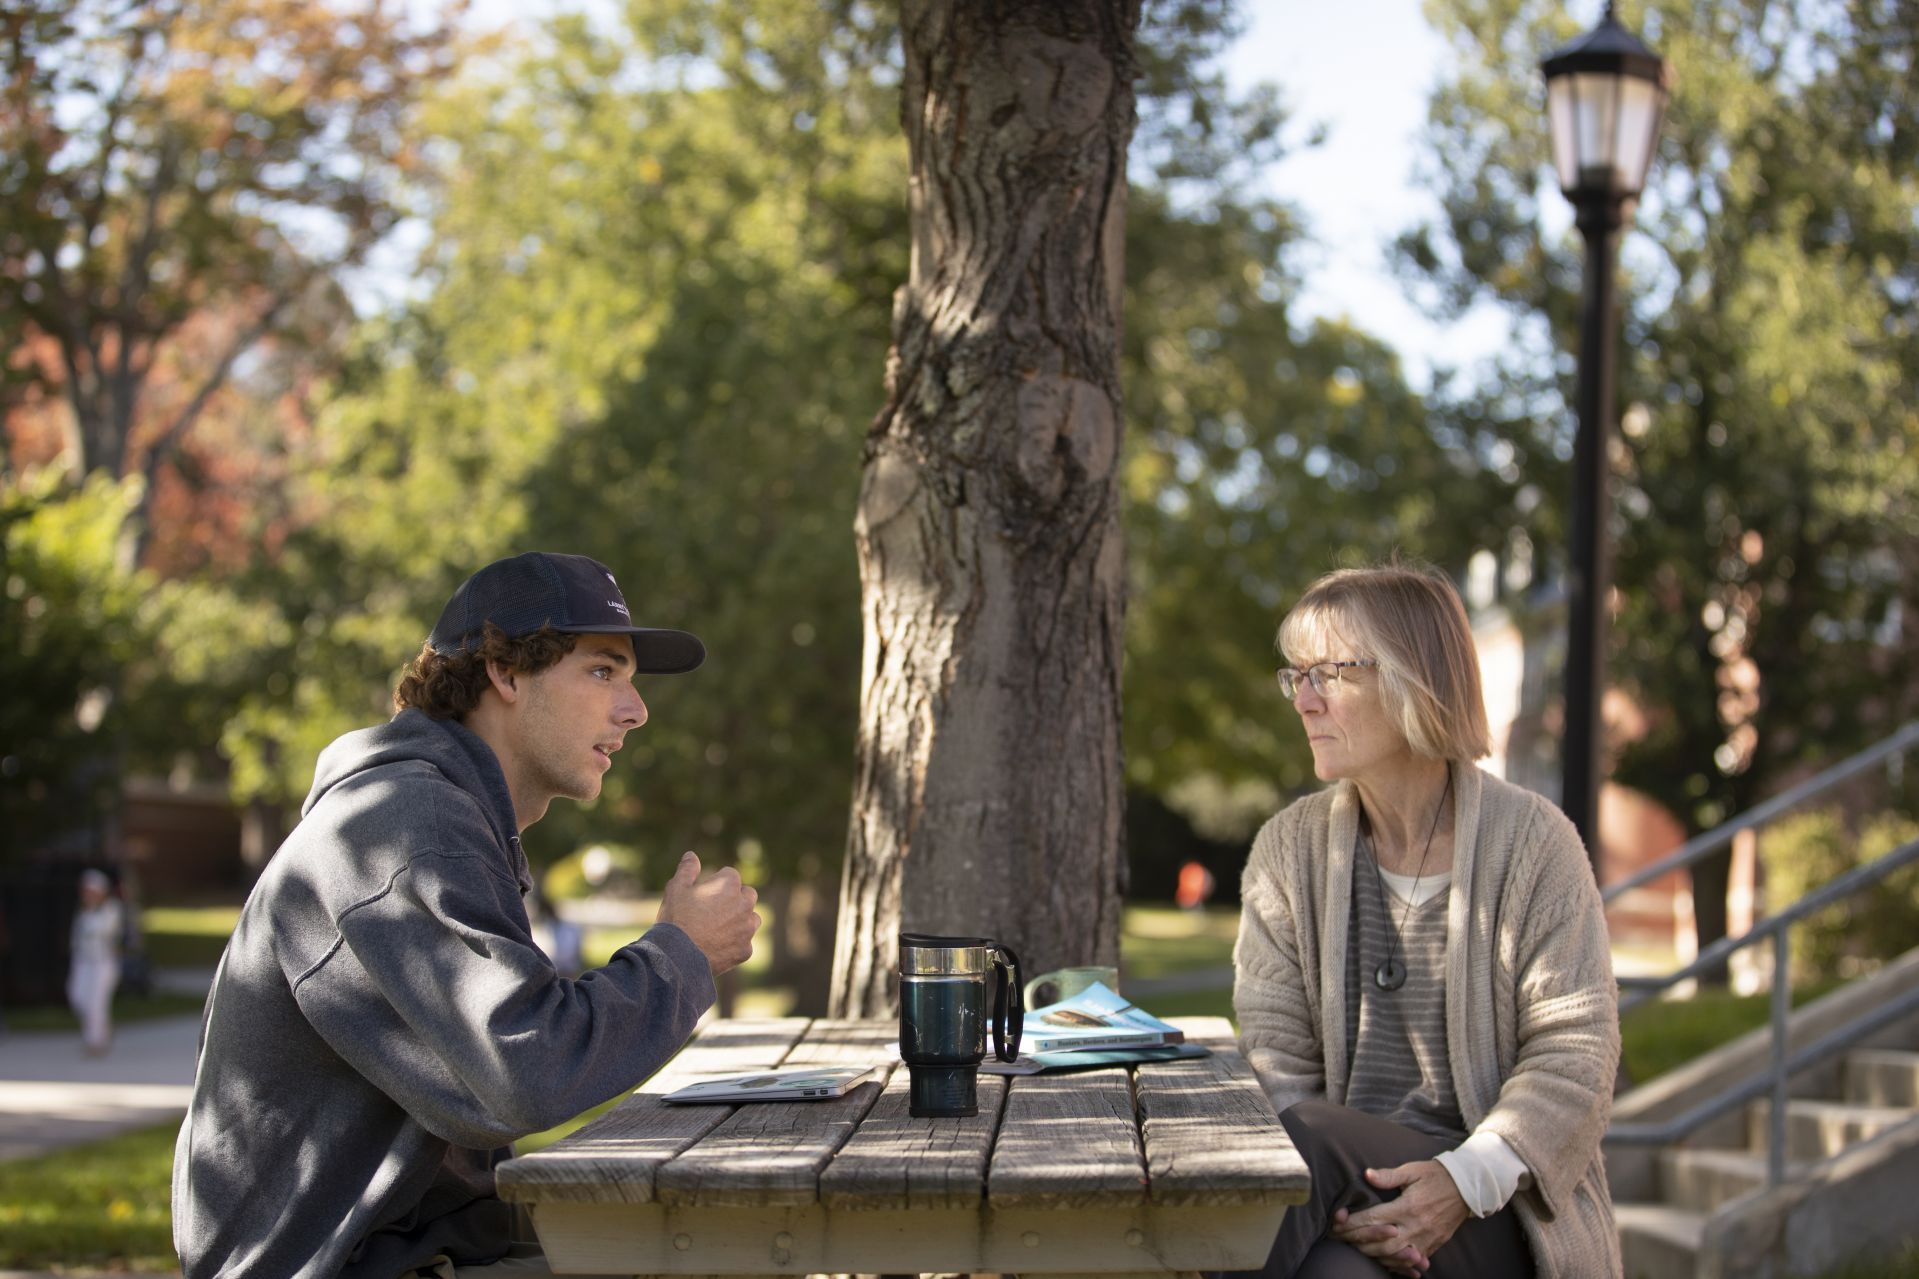 """""""You can just tell that she appreciates life and nature by the way she teaches,"""" says Lars Schuster '20, an environmental studies major from Simsbury, Conn., meeting with Costlow outside Roger Williams Hall to discuss his senior thesis. (Phyllis Graber Jensen/Bates College)"""